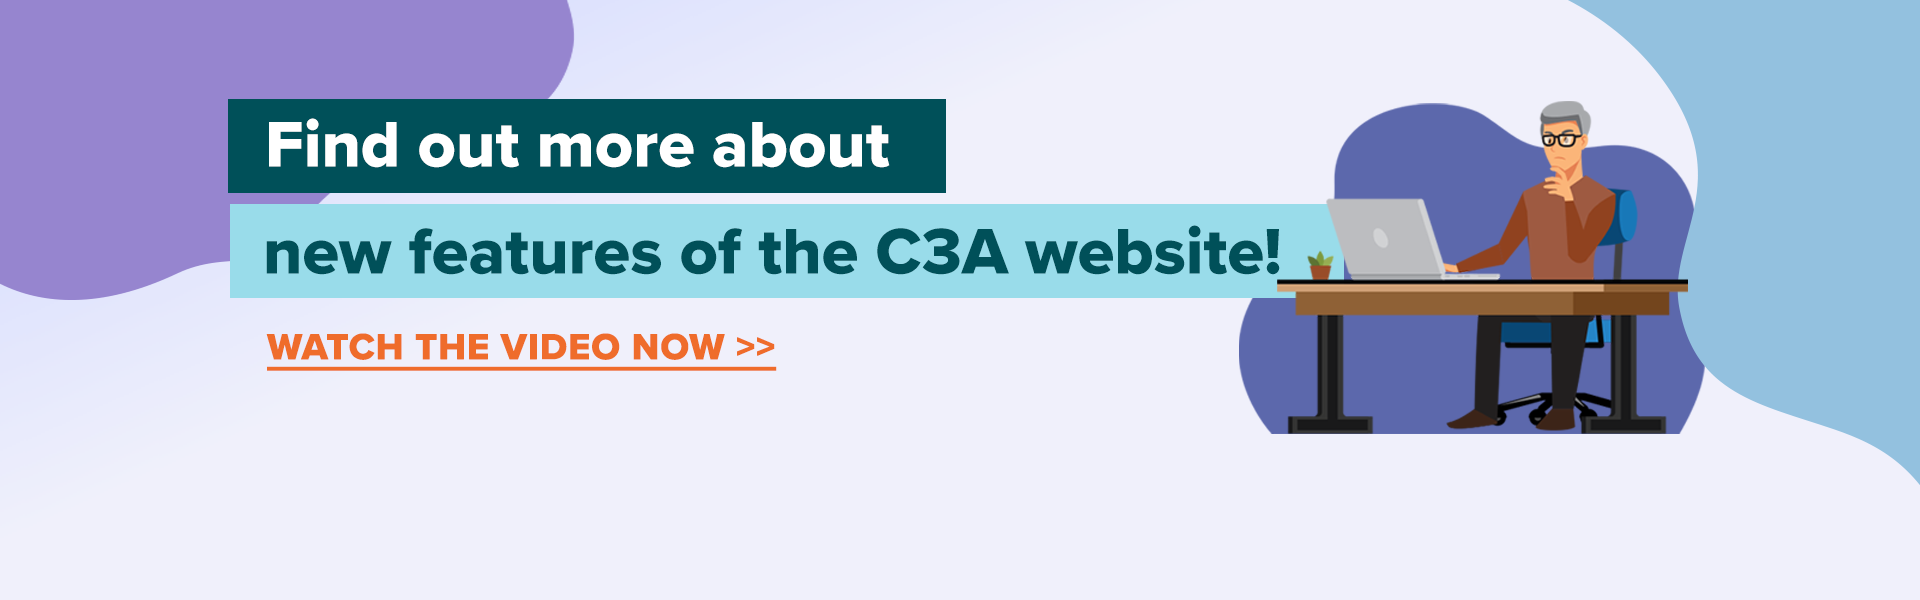 New Features of the C3A Website